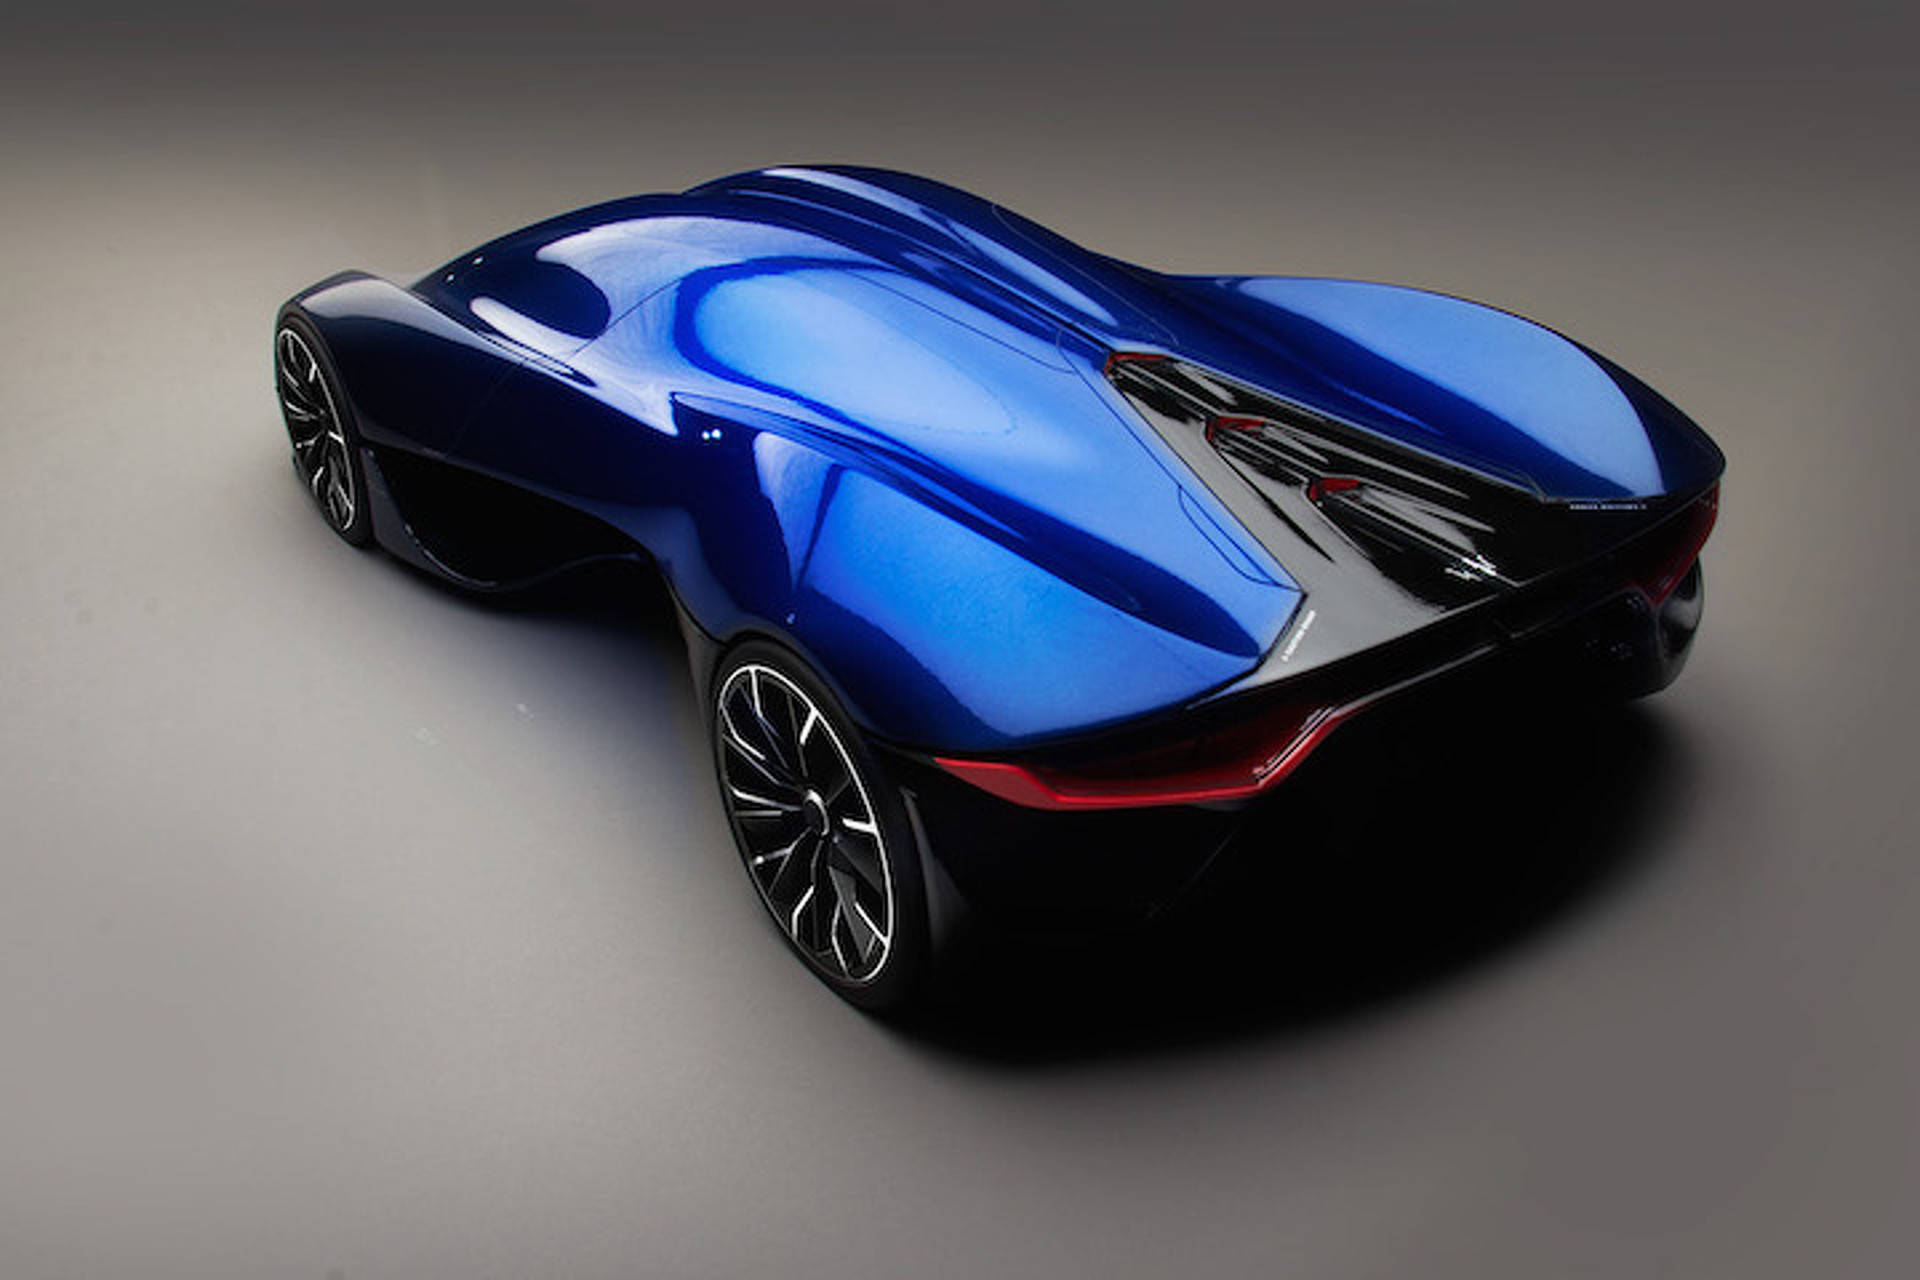 This Hybrid Hypercar Concept Could Be Exactly What